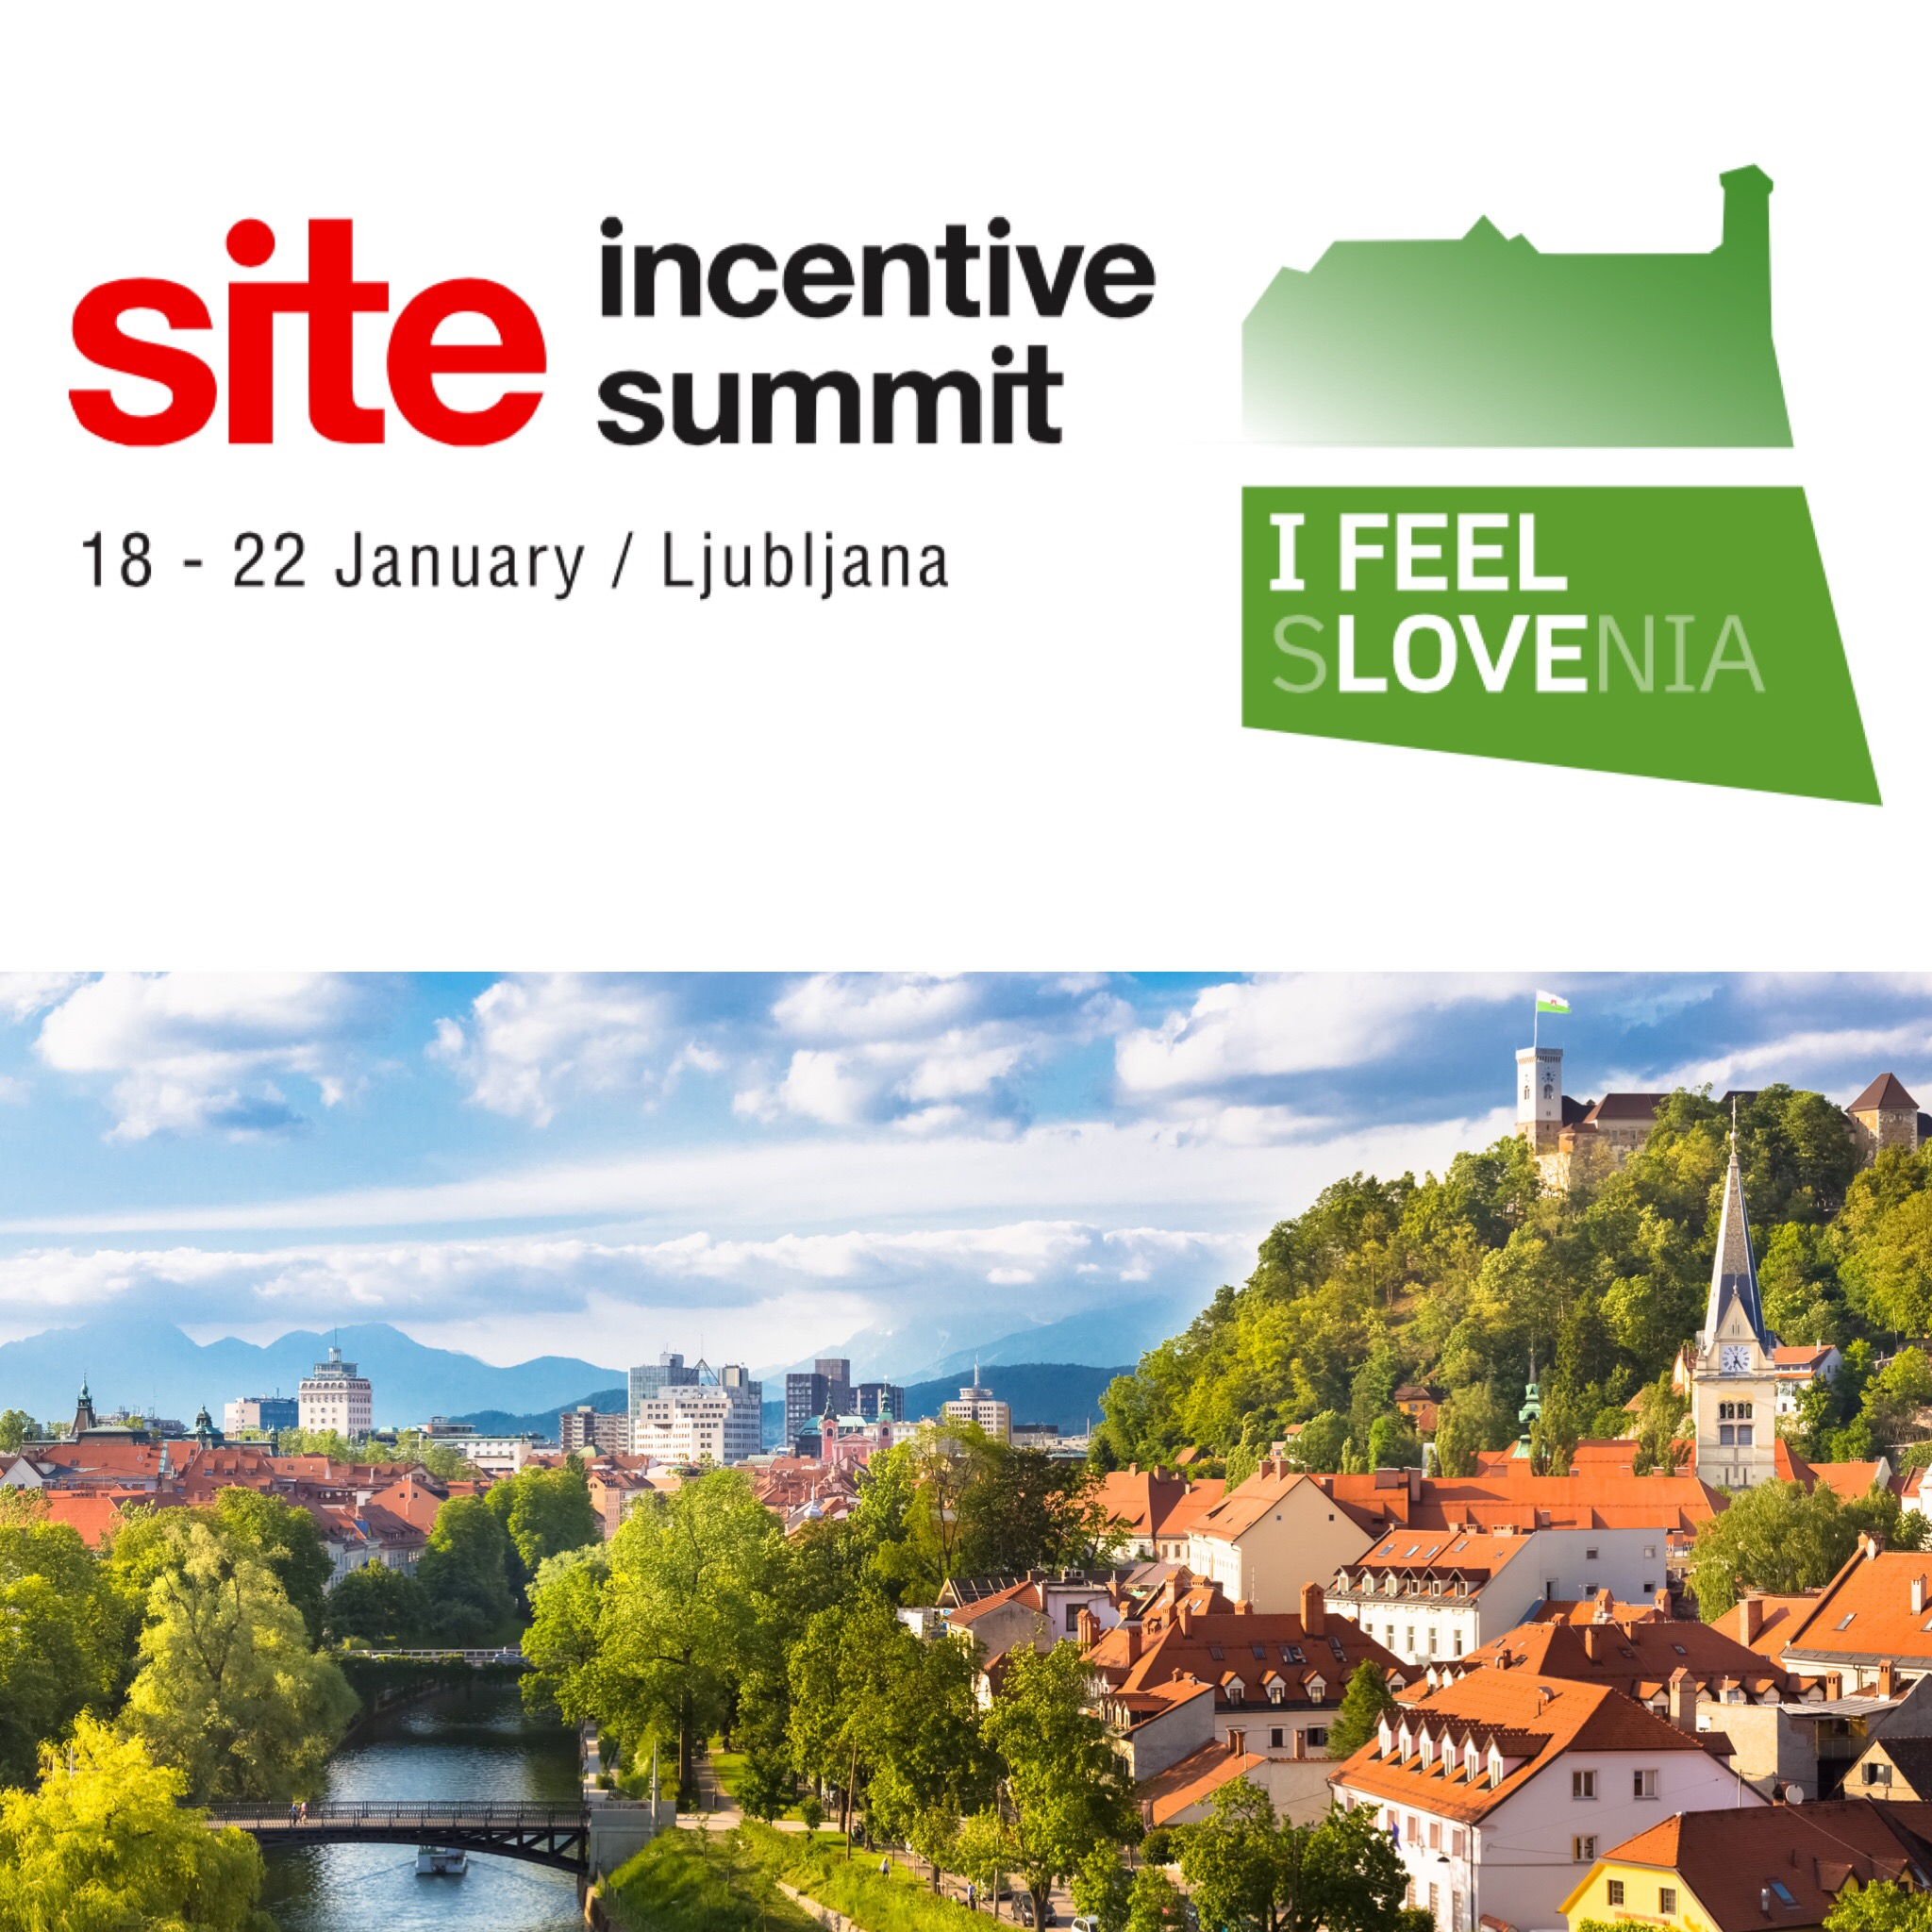 SITE Incentive Summit 2016